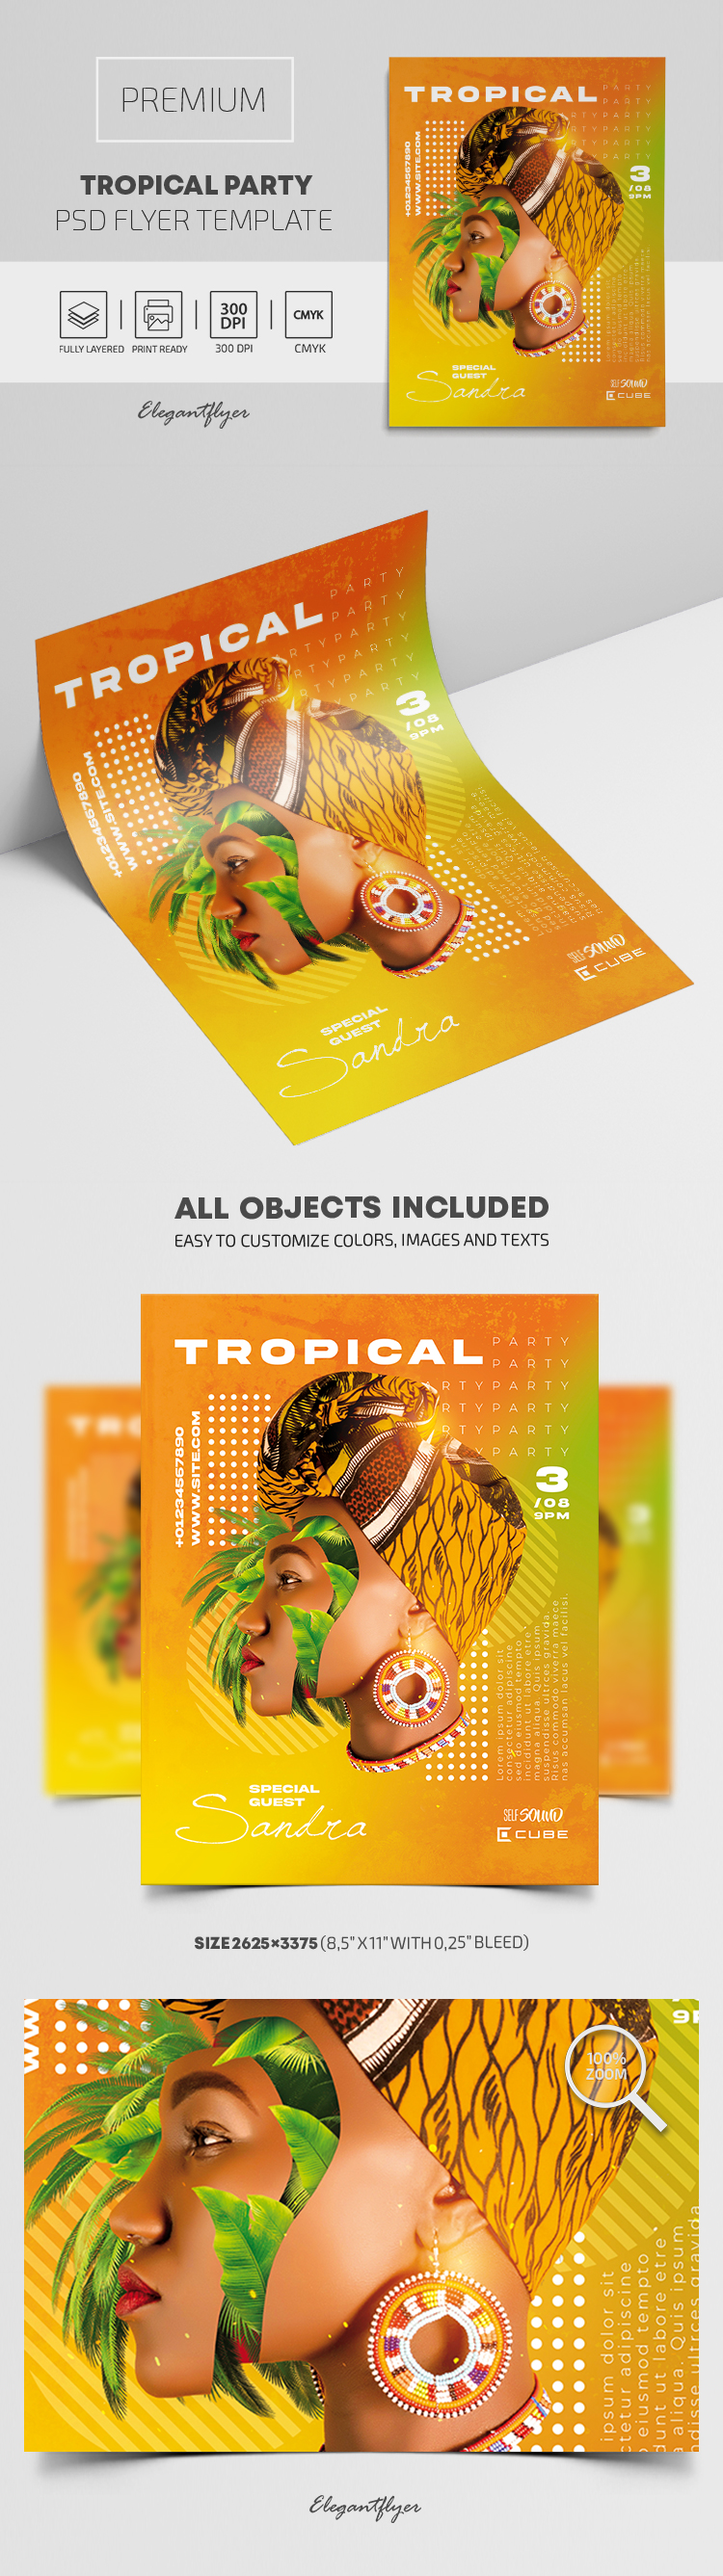 Tropical Party – Premium PSD Flyer Template